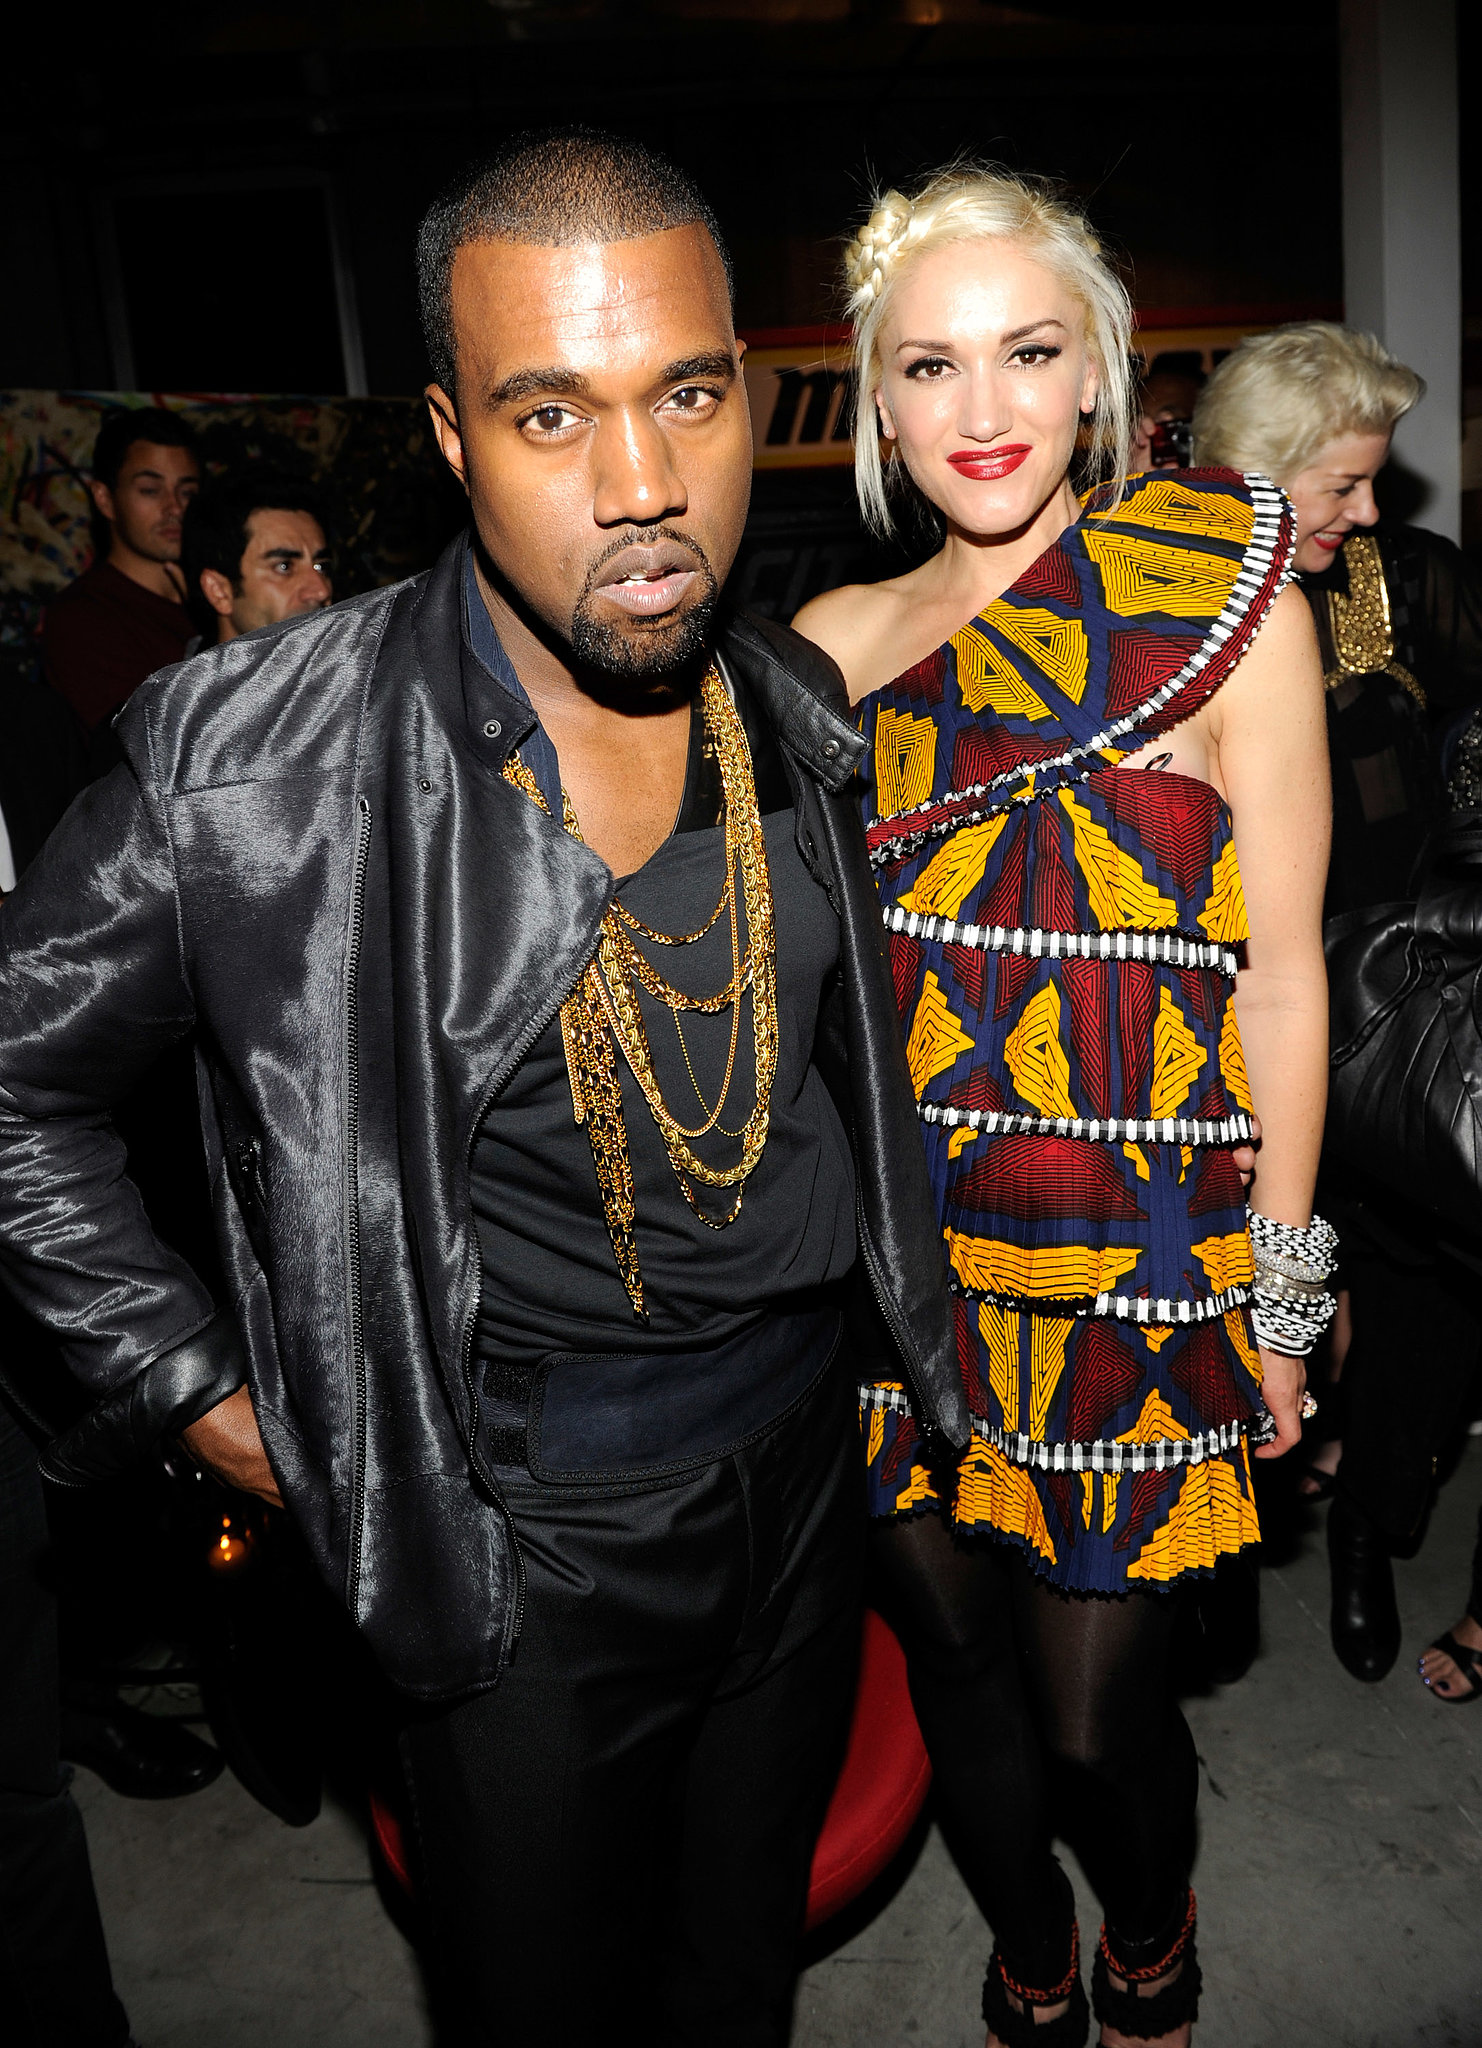 Gwen Stefani and Kanye West linked up at her line L.A.M.B's afterparty during NYFW in September 2010.